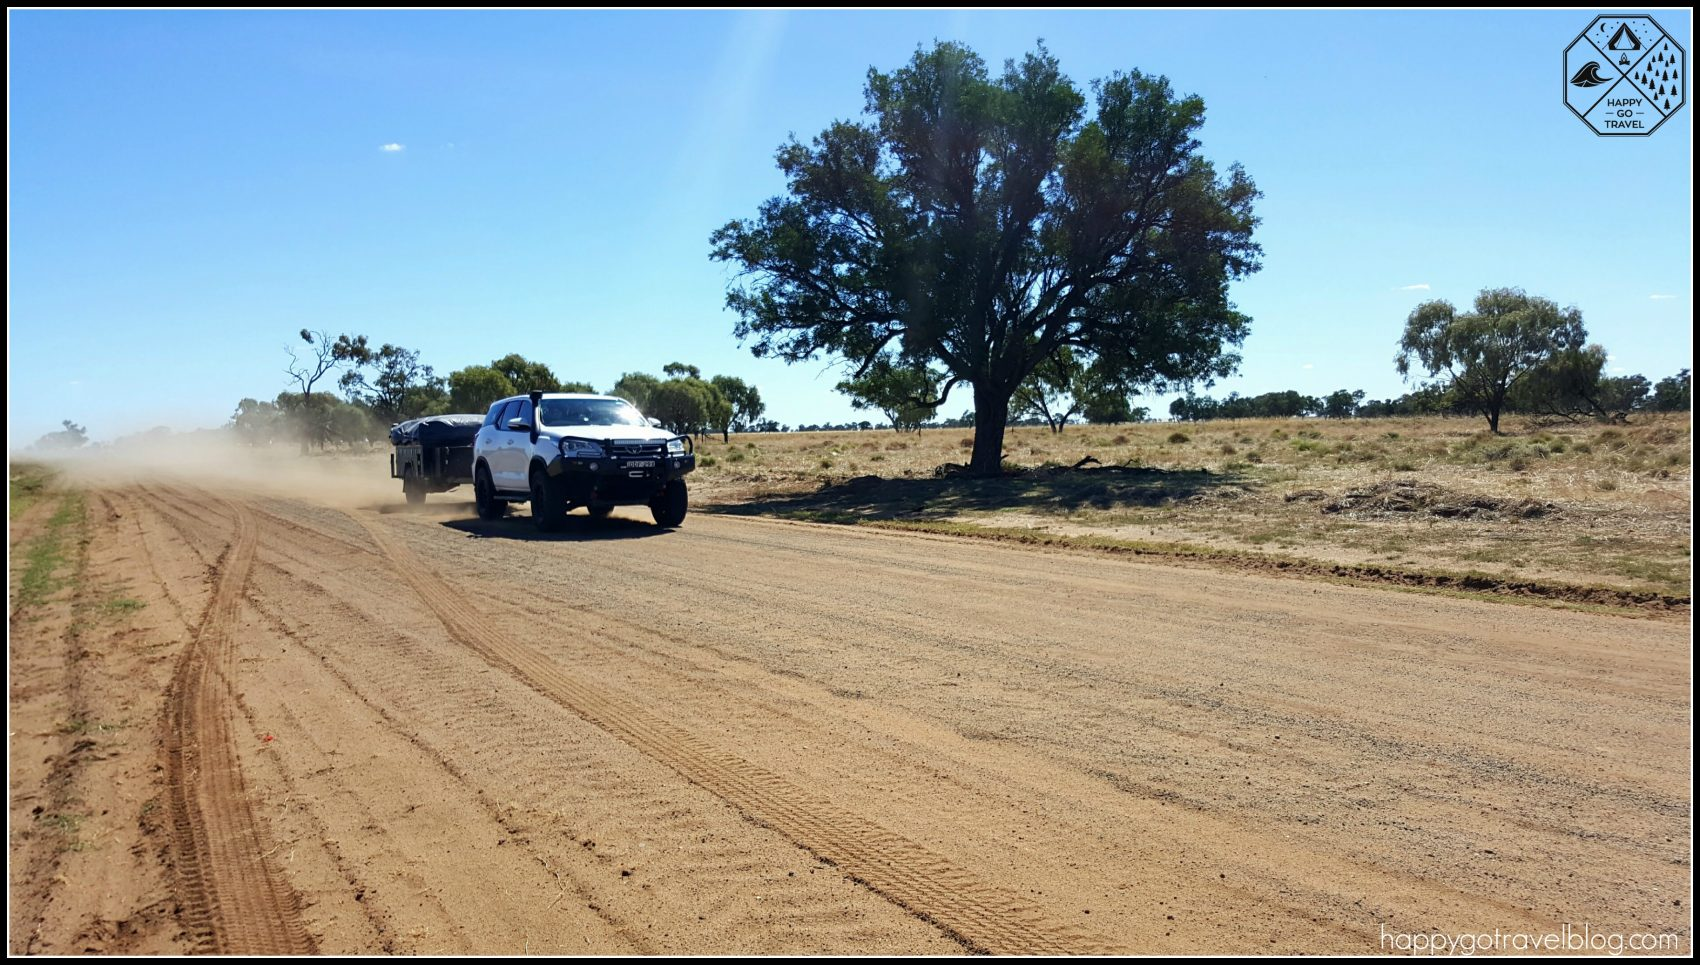 Toyota Fortuner driving on dirt road to Lightning Ridge with camper trailer